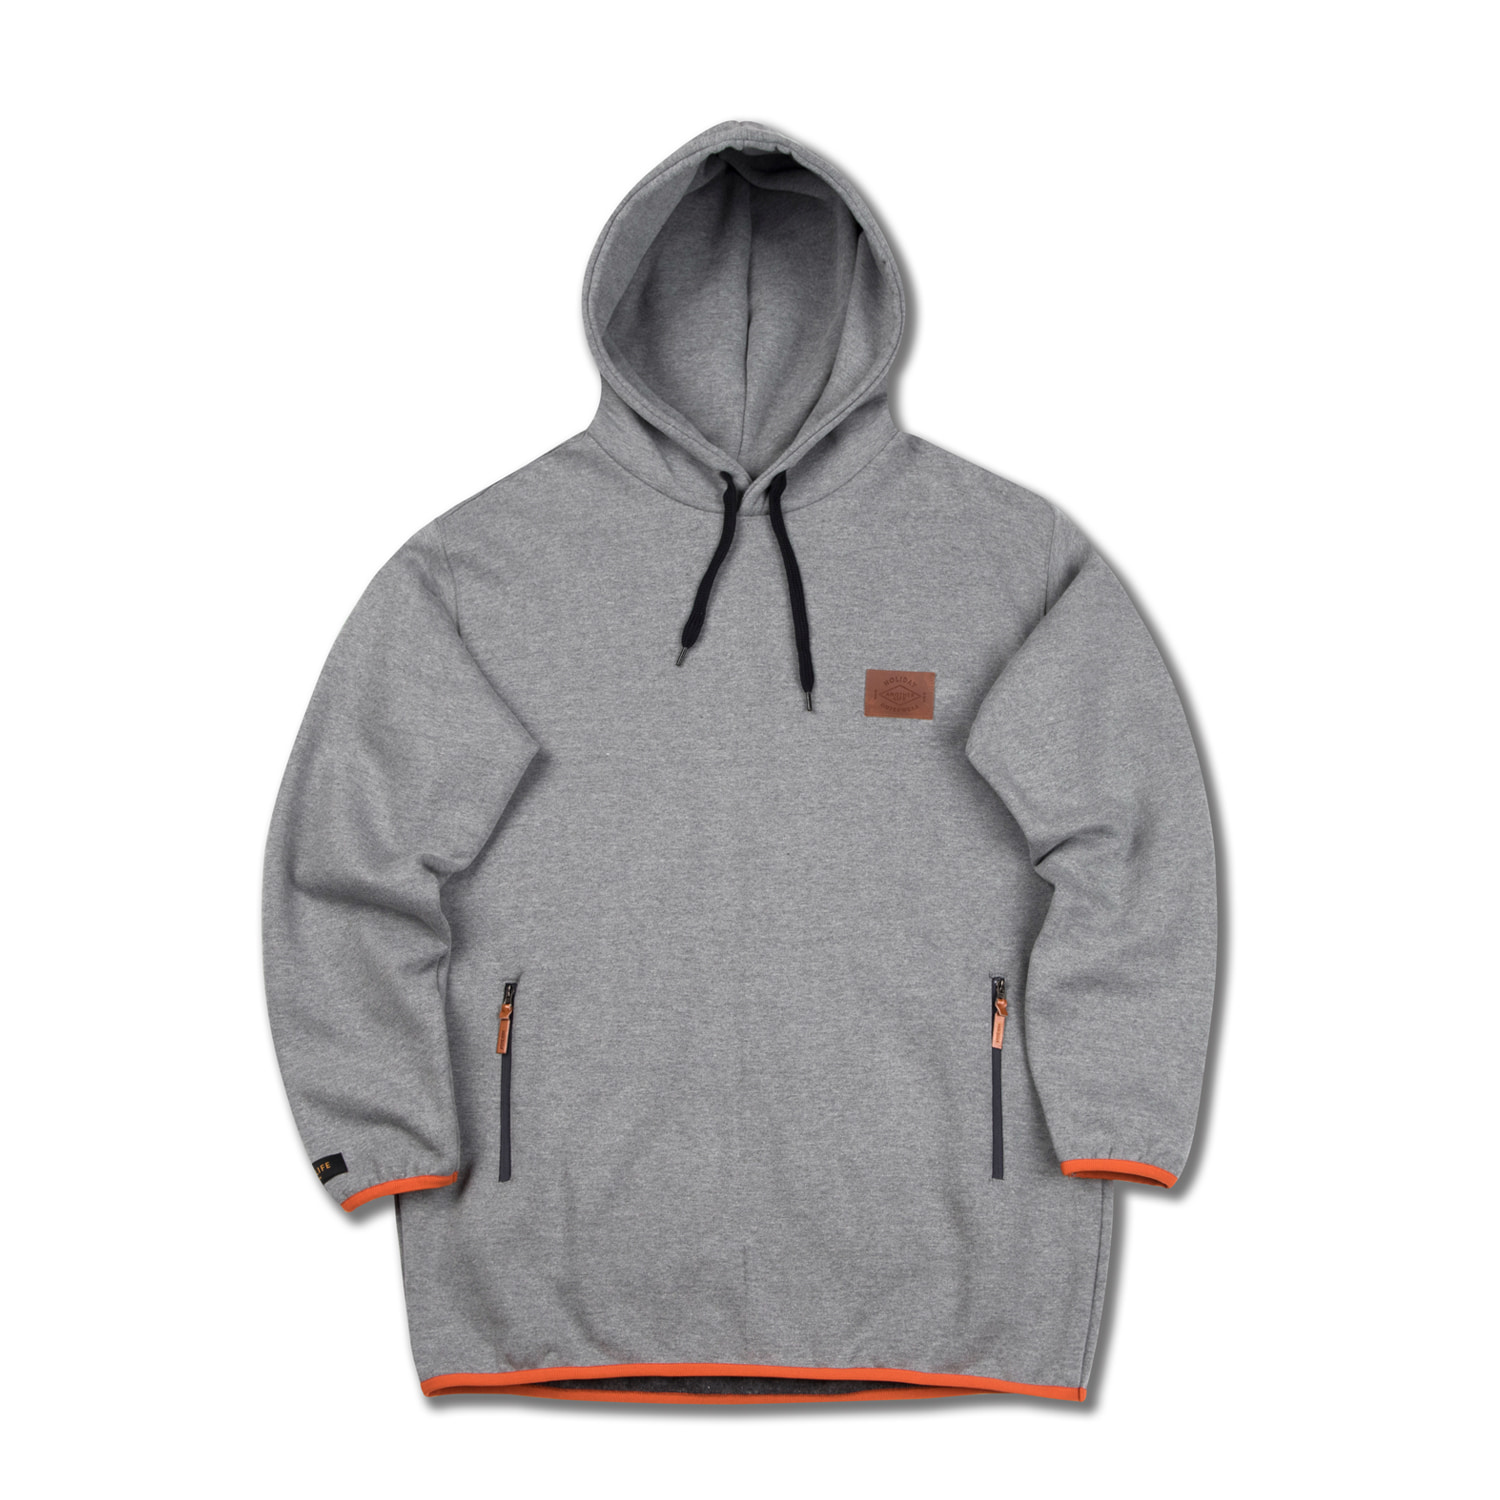 EASY hoodie - grayHOLIDAY OUTERWEAR